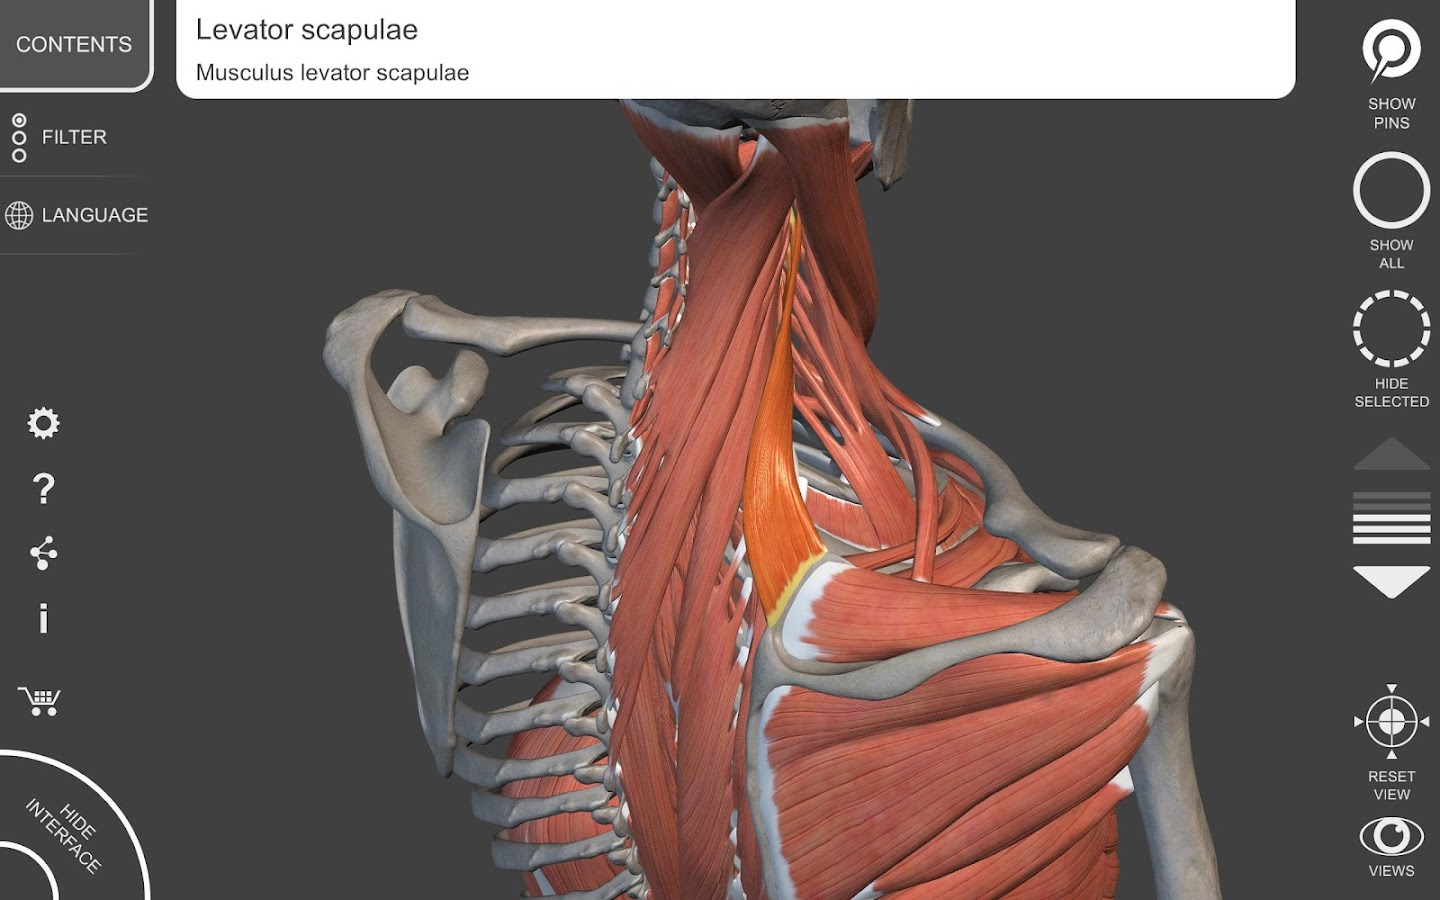 Muscle Skeleton 3d Atlas Of Anatomy 175 Apk Obb Data File